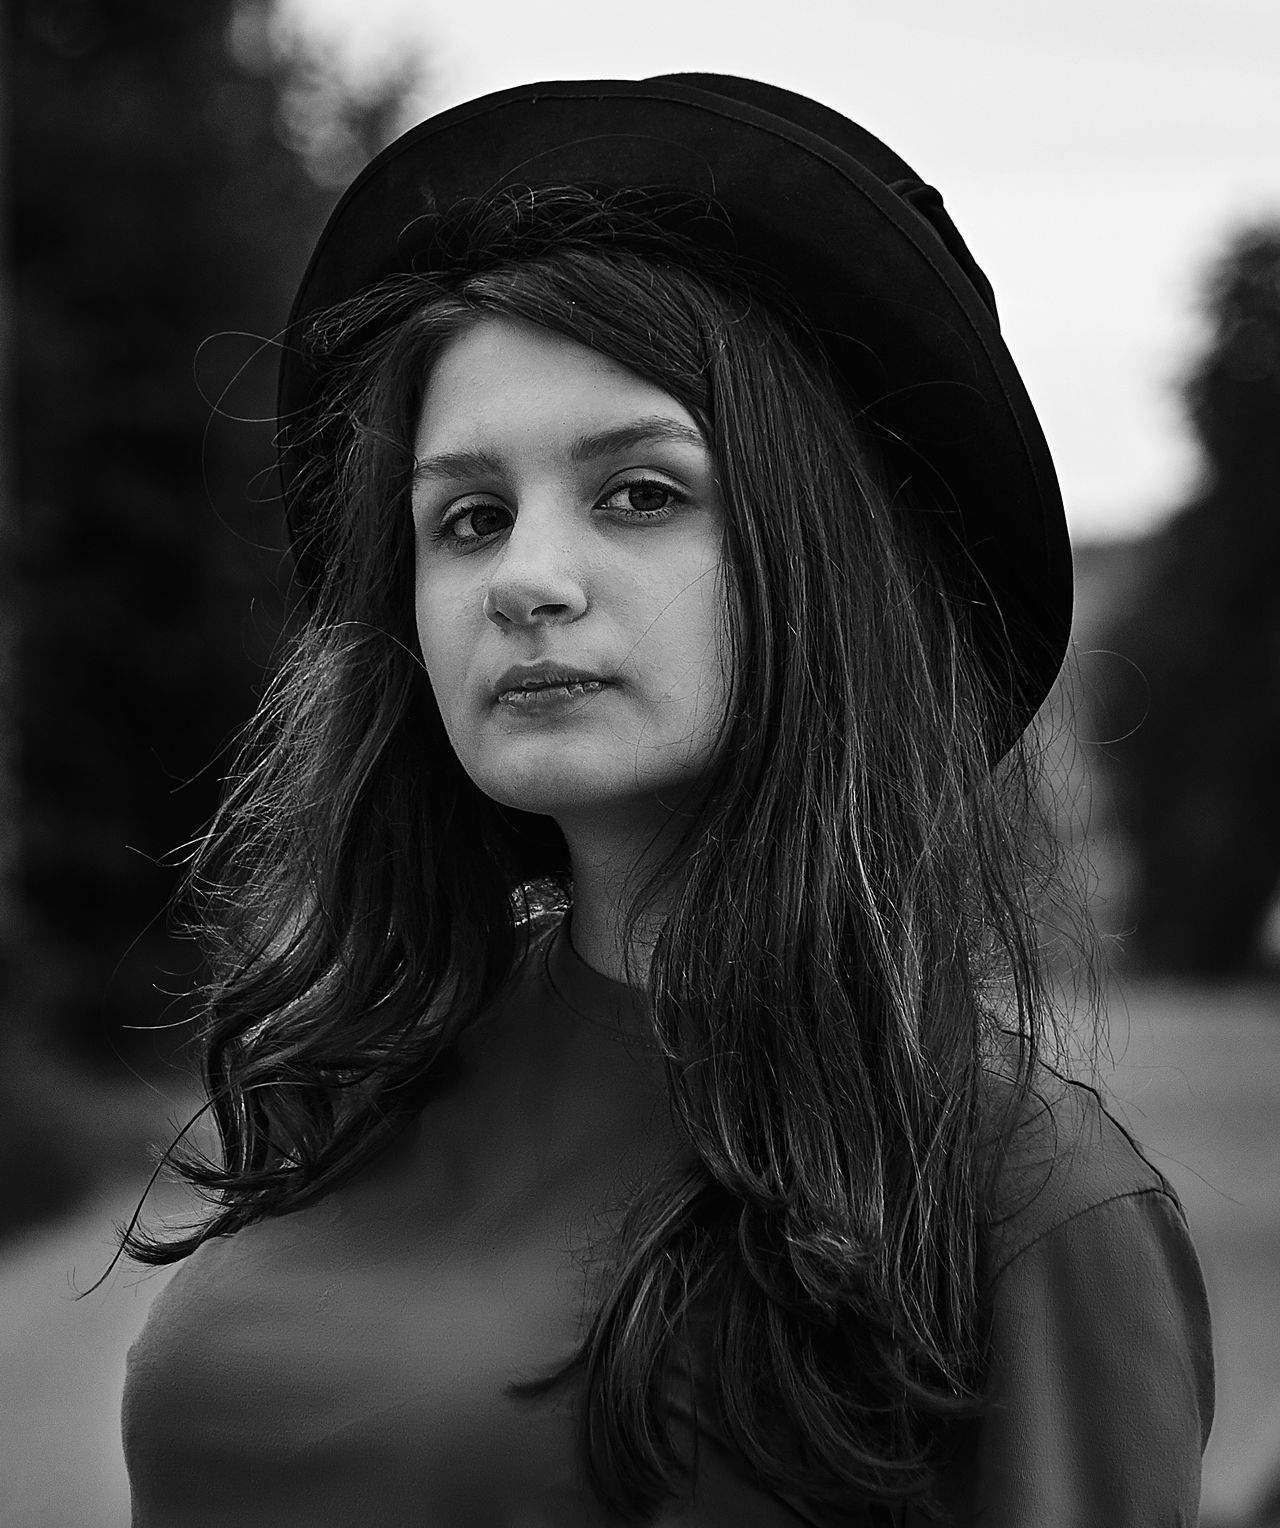 Russia Daughter Long Hair Beautiful Woman Serious One Person Real People Young Adult Beauty Lifestyles Young Women Leisure Activity Focus On Foreground Outdoors Portrait Day Close-up Adult People Portrait Photography Blackandwhite Black And White Blackandwhite Photography Black & White Black And White Photography